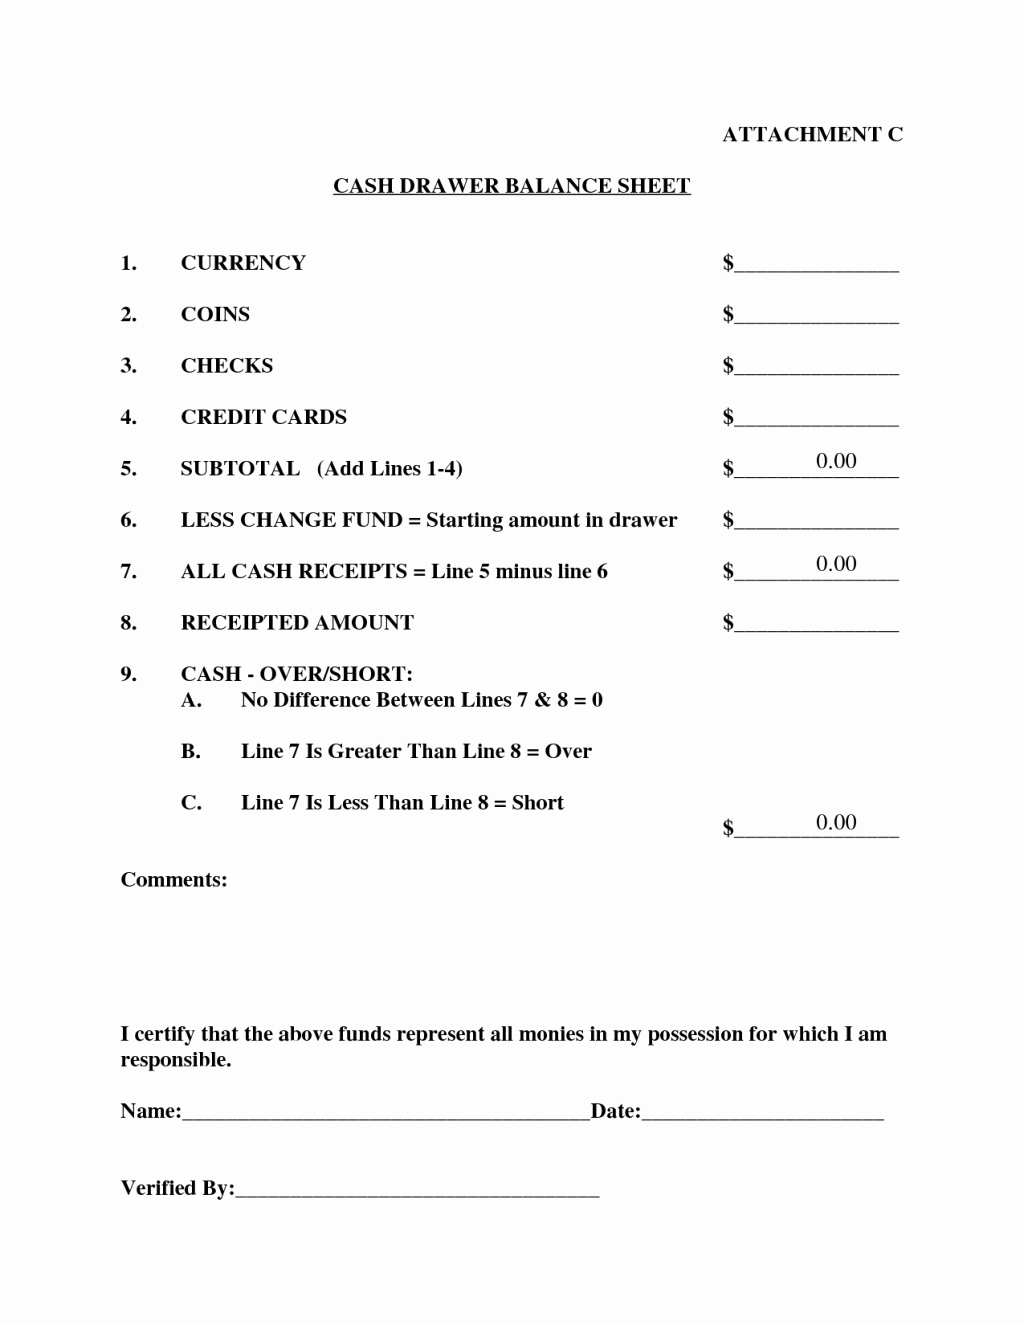 Cash Drawer Balance Sheet Template New Sheet Cash Drawer Tally Template Till Google Search